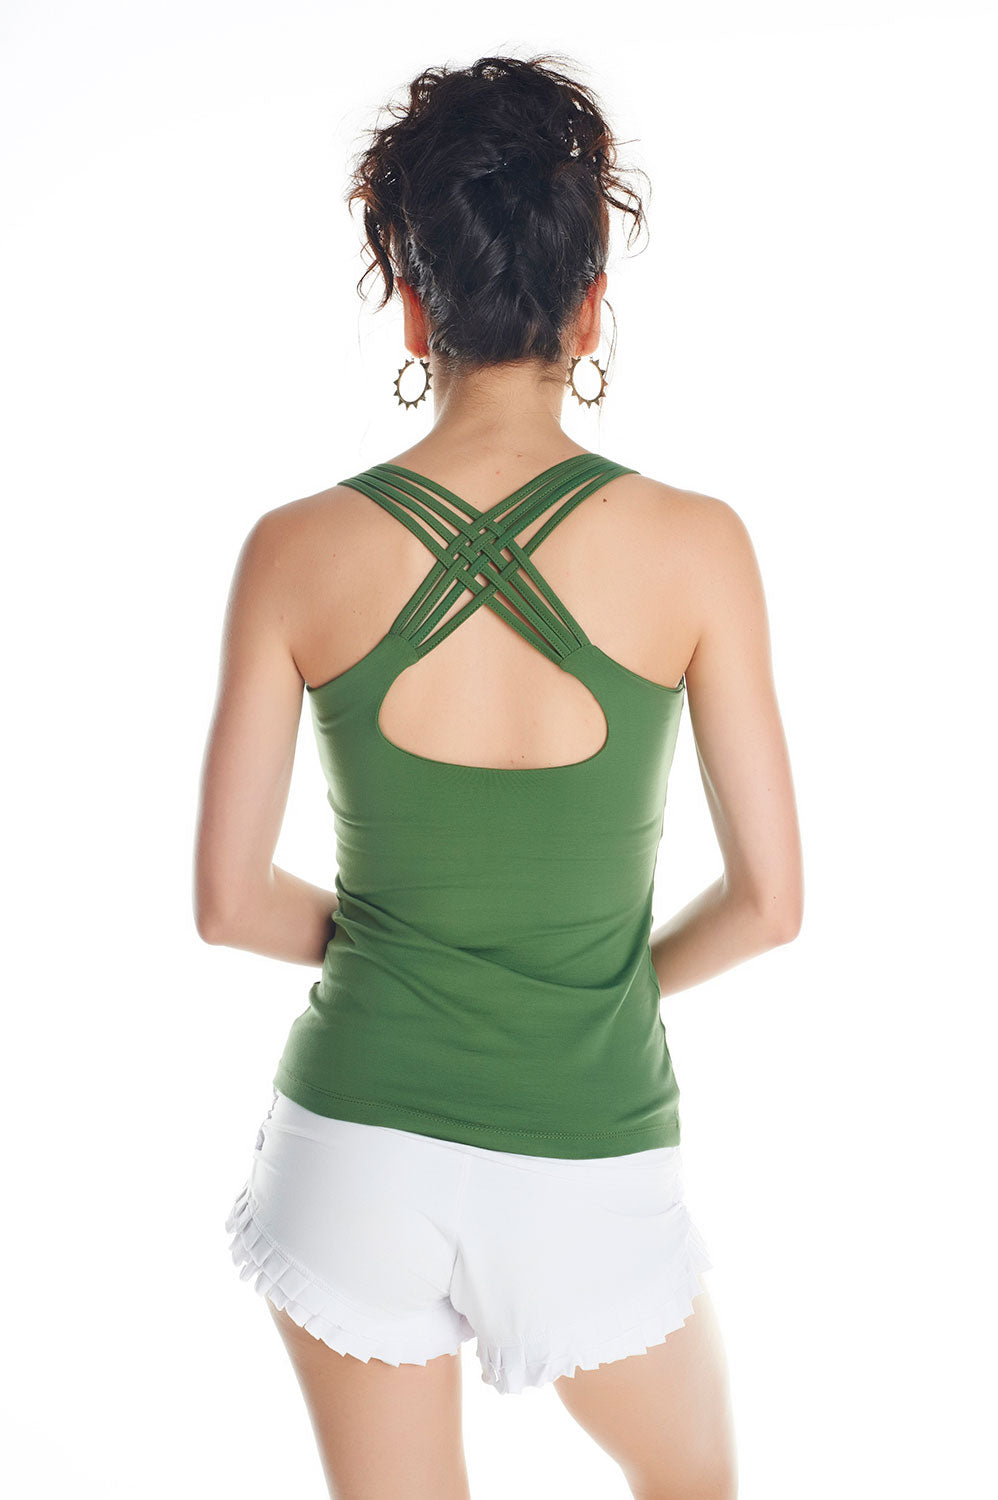 ASANA YOGA TOP WITH FLOWER OF LIFE PRINT